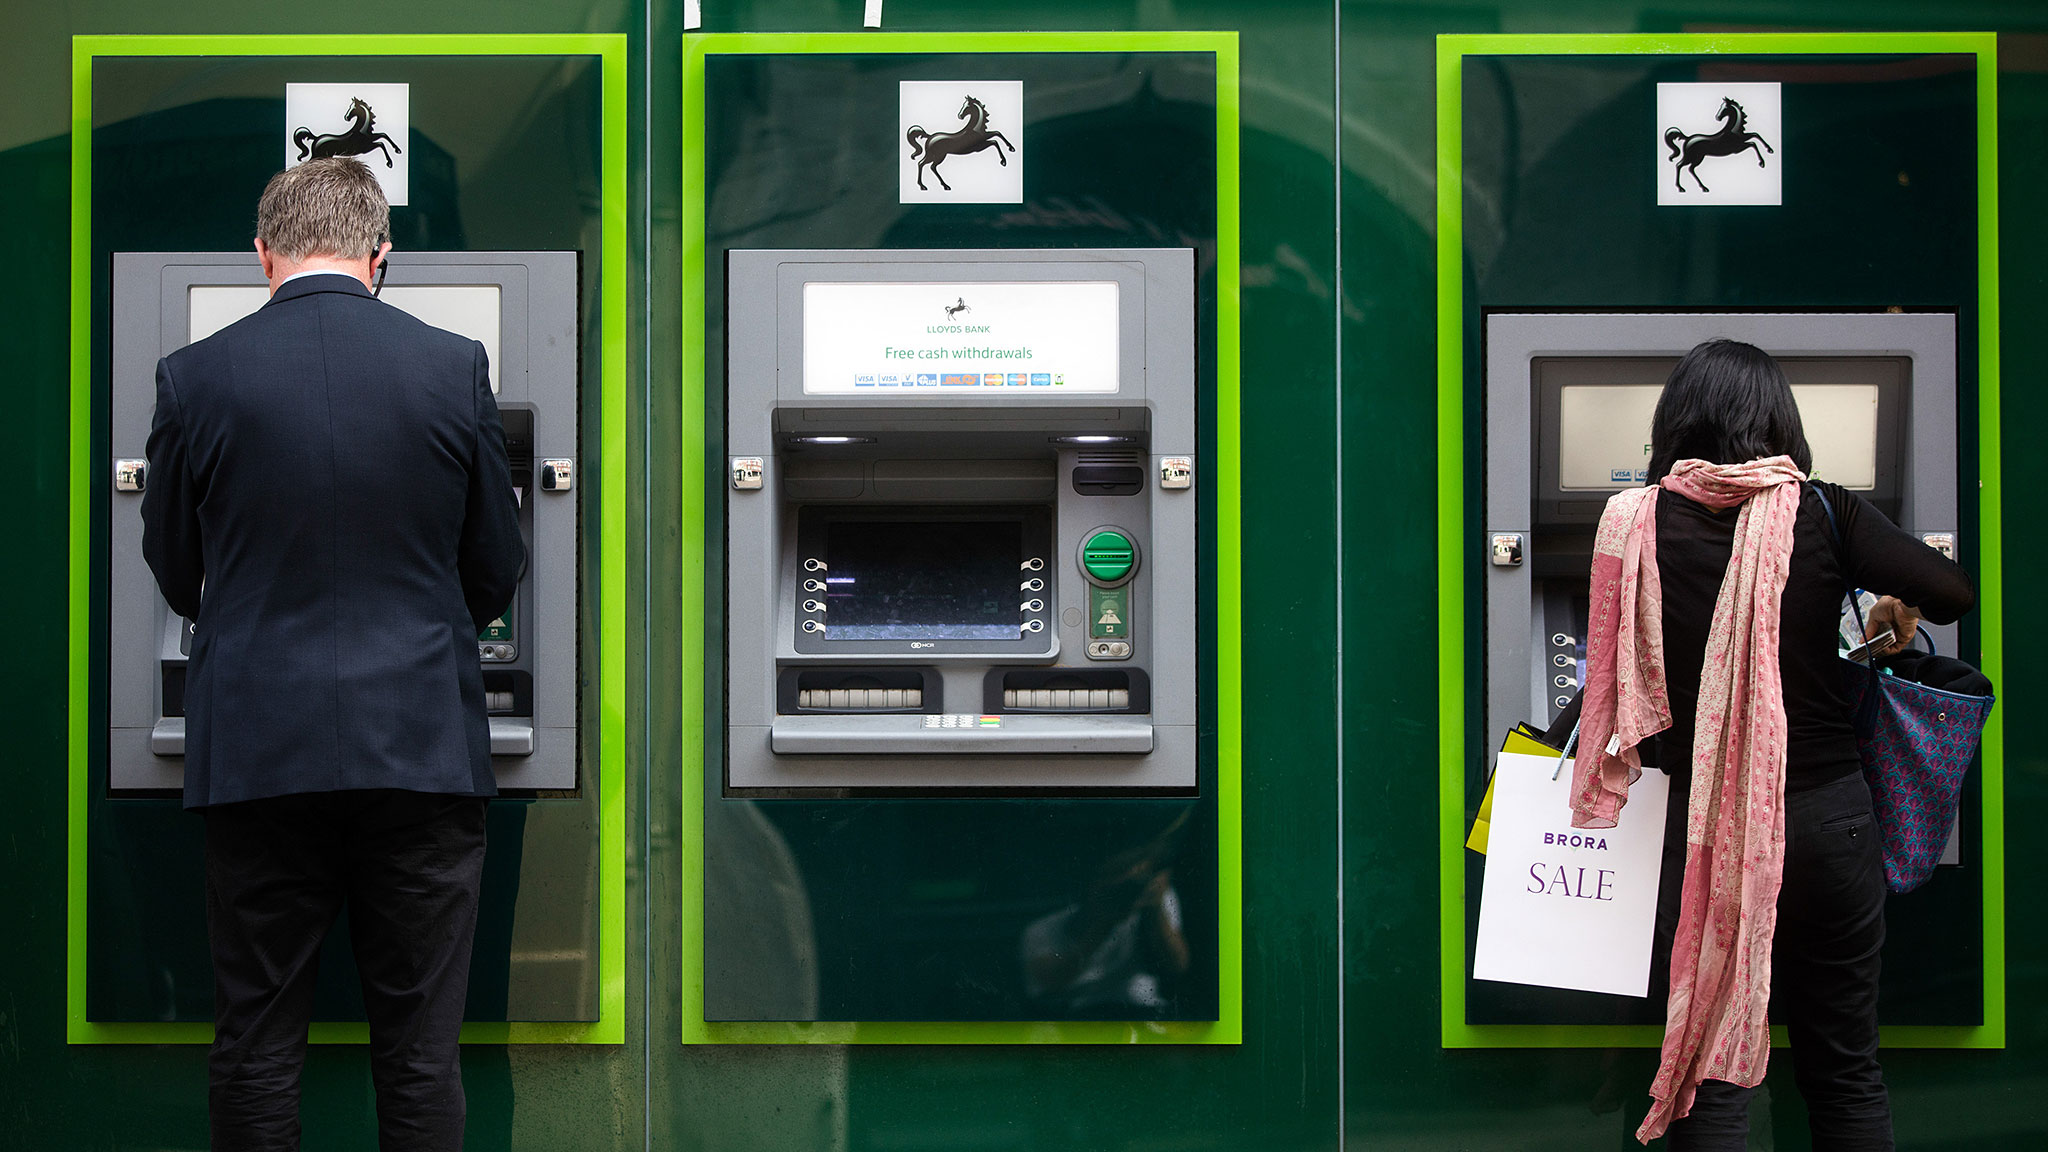 A tale of two cyber bank heists that reveals their vulnerability ...